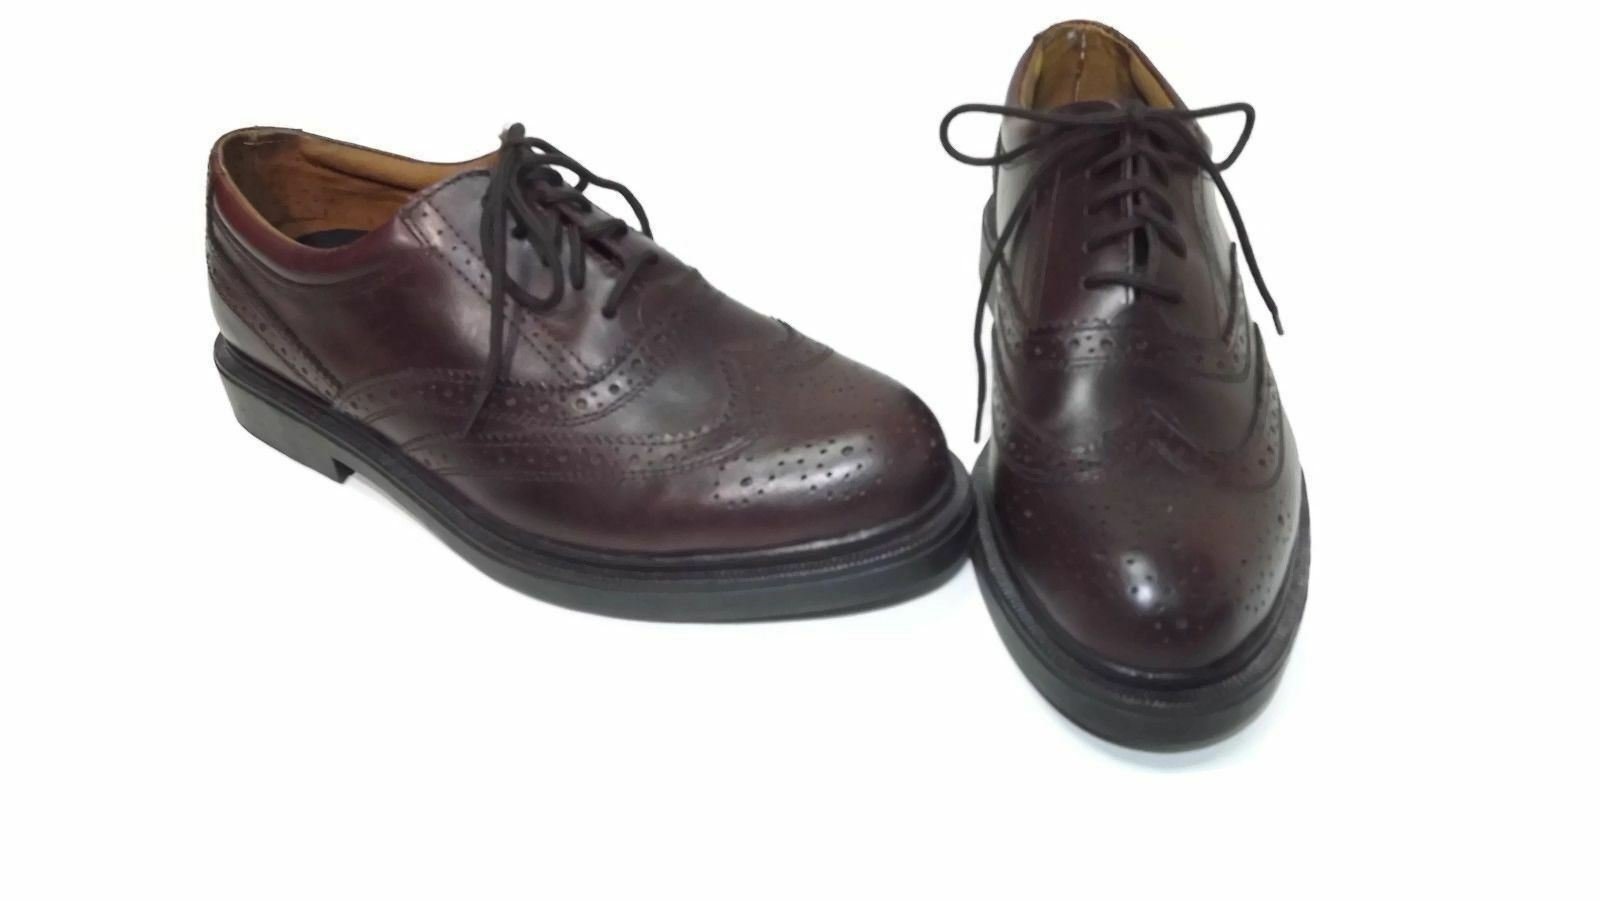 DR Scholl's BACKGUARD Mens BROWN Leather Wingtips Dress to Casual shoes Size 8